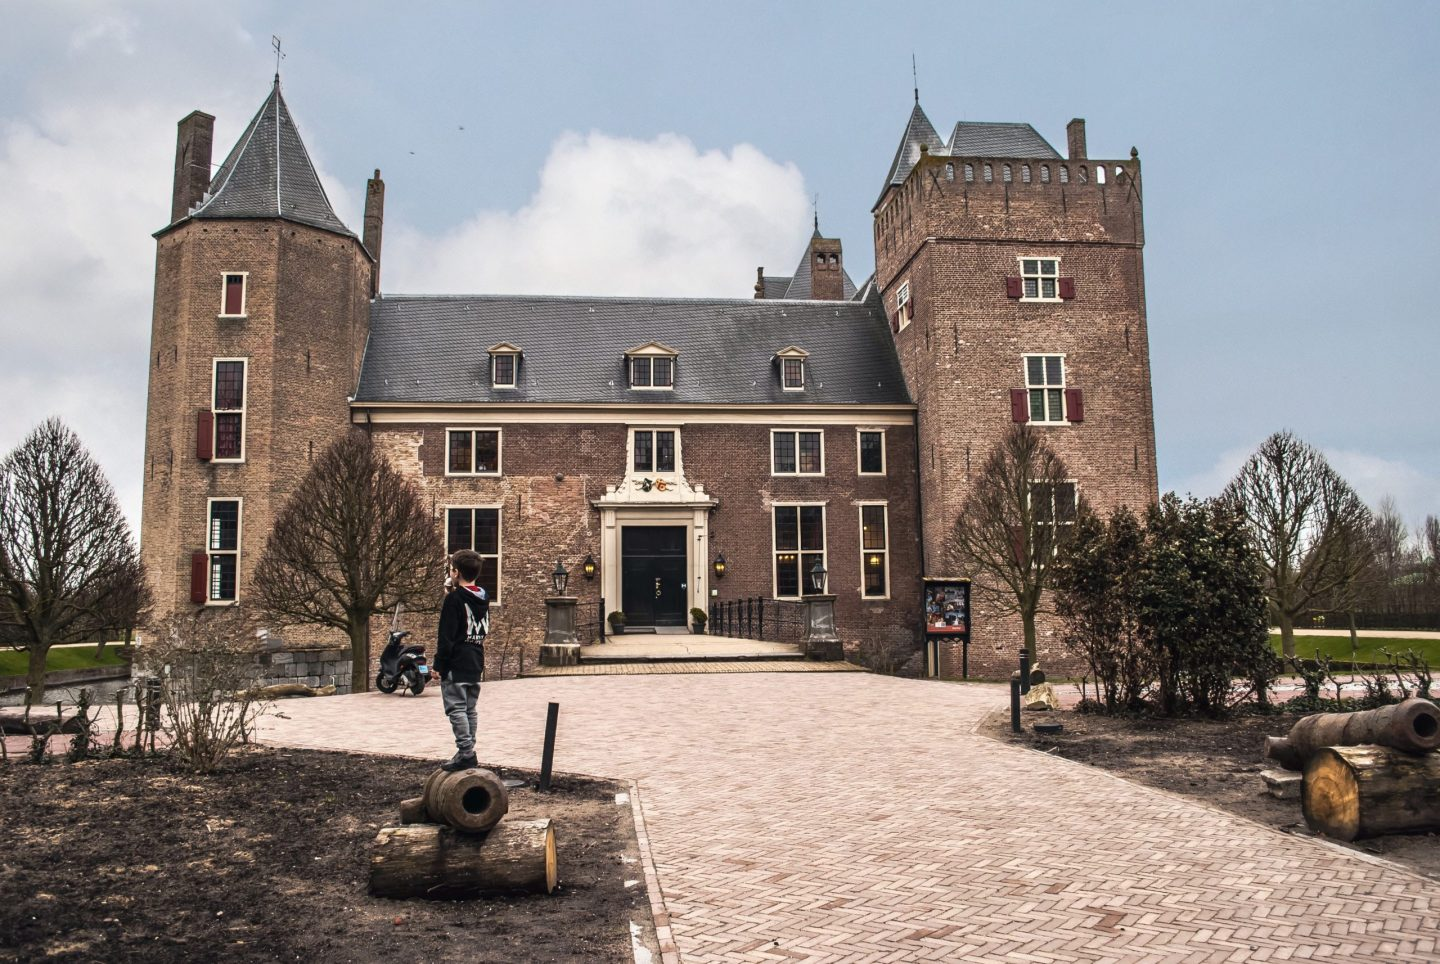 Stay in a castle in the Netherlands? Yes please!